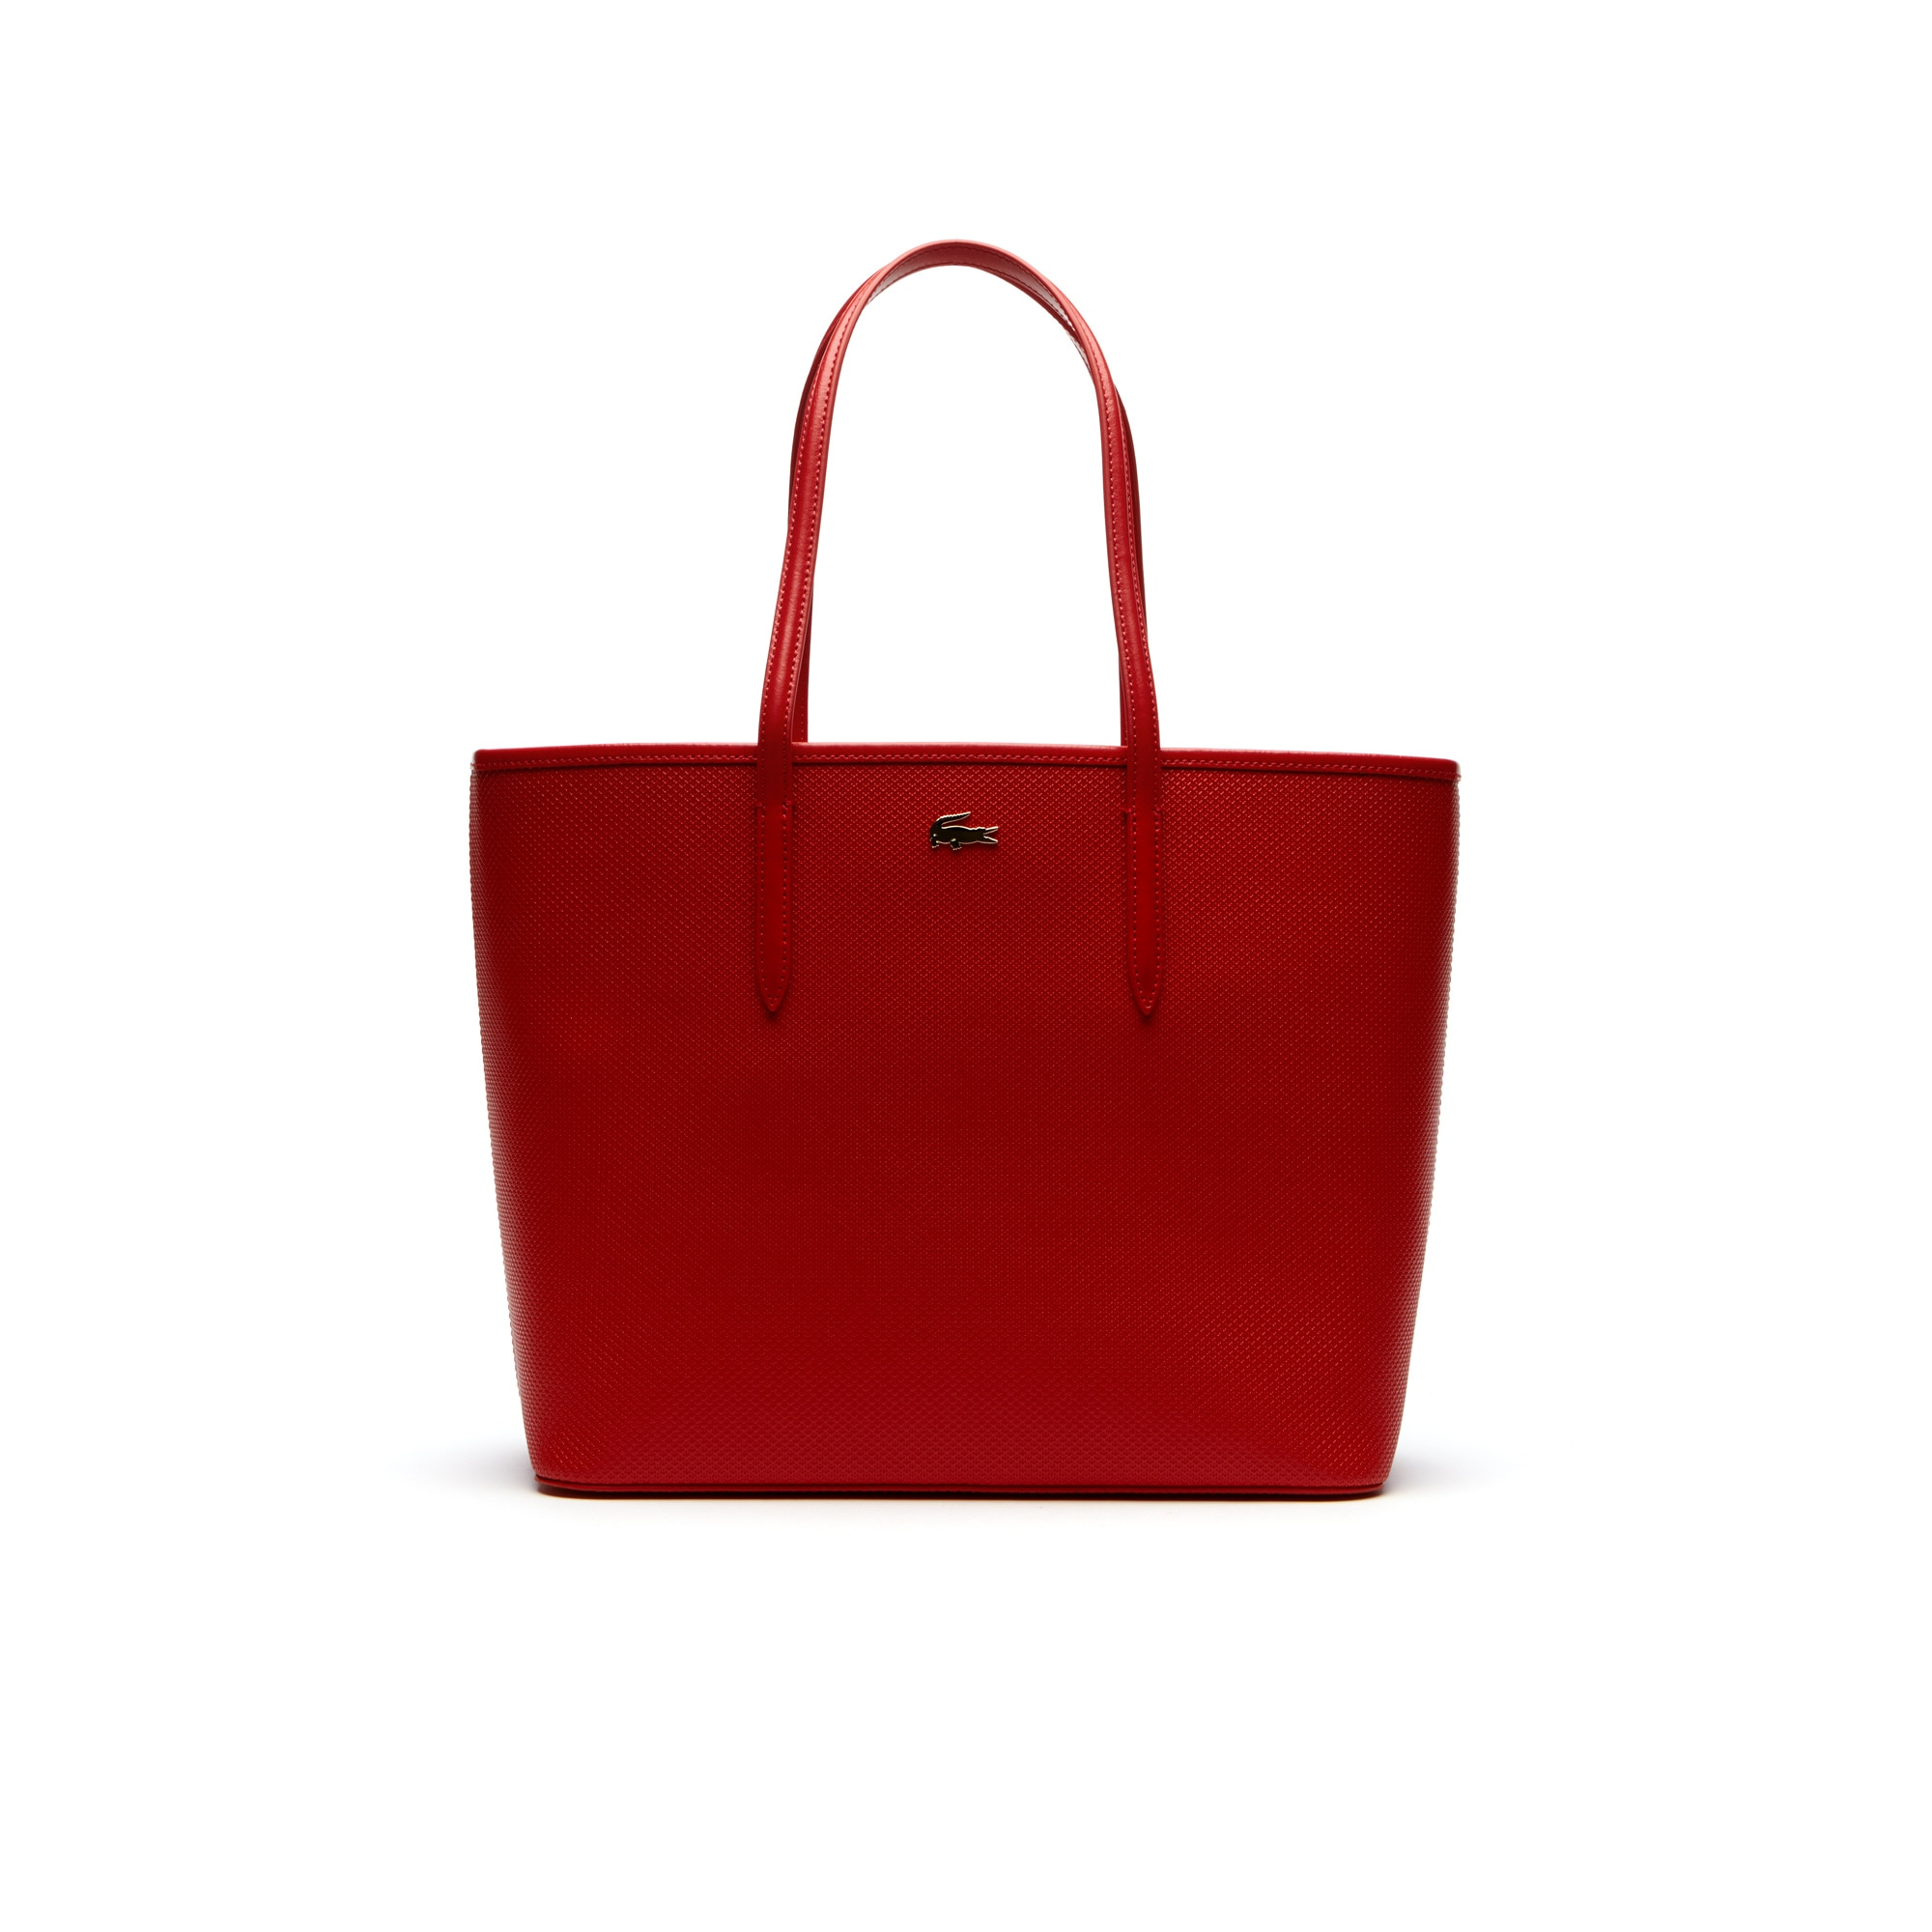 Women's Chantaco Piqué Leather Tote Bag